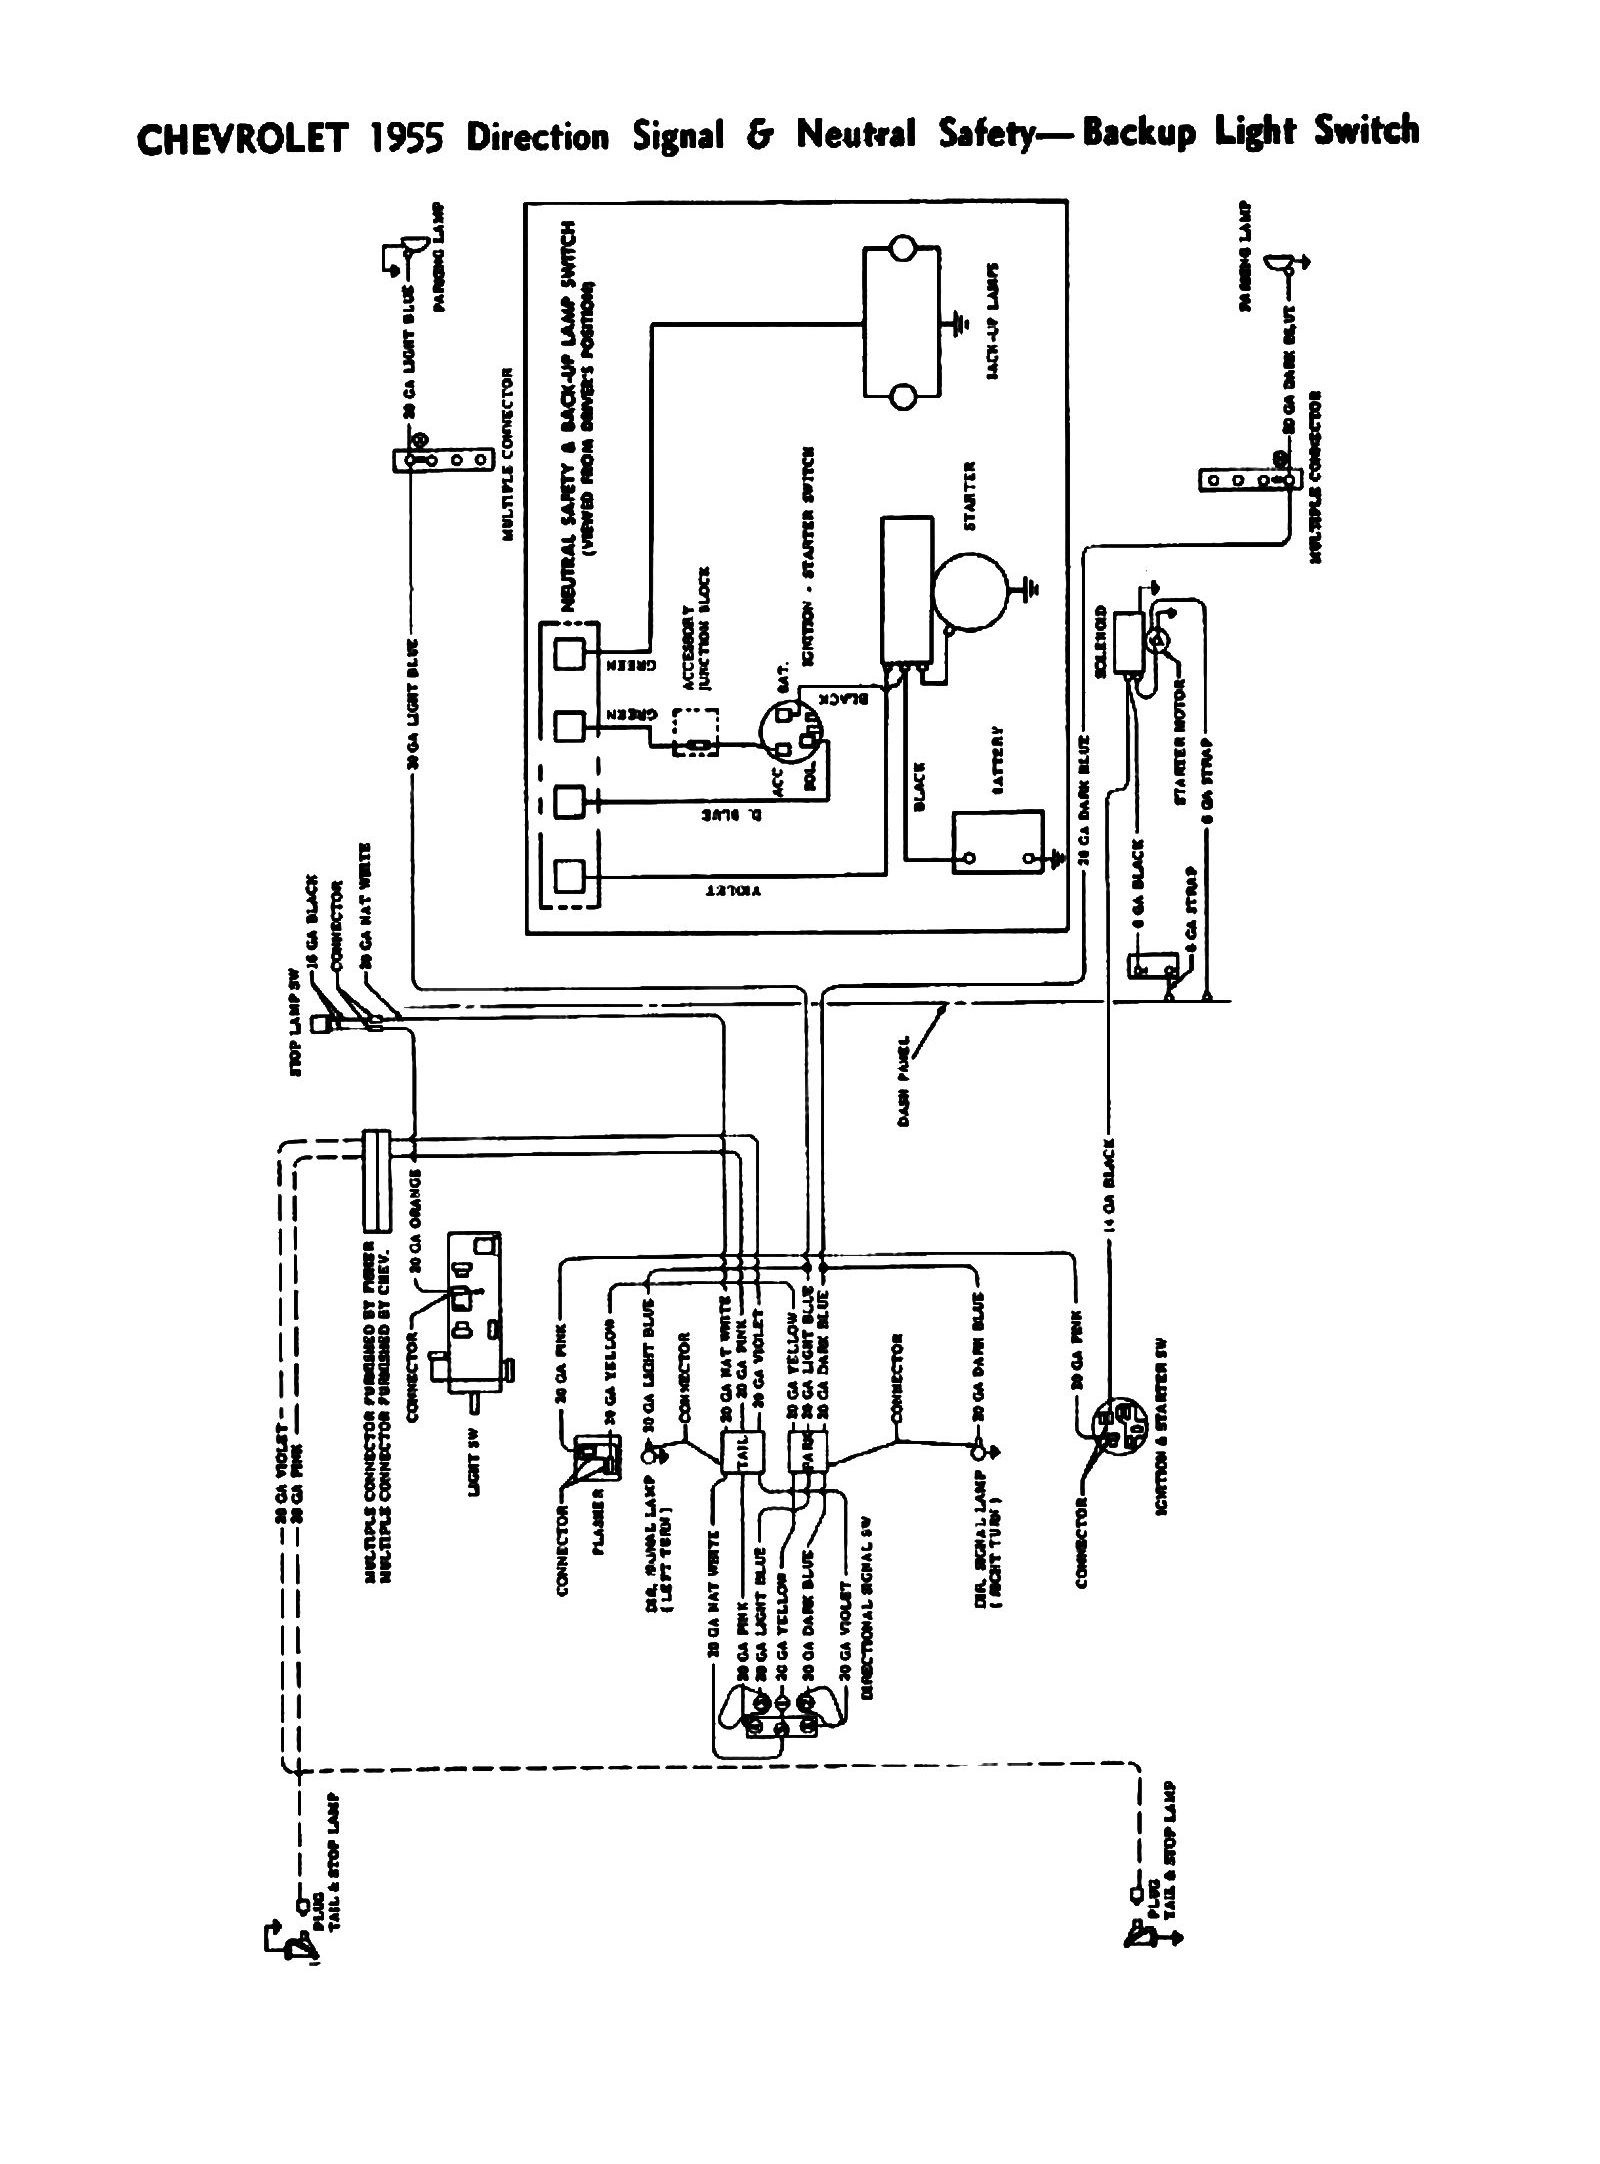 Wiring Diagrams for Chevy Trucks 1957 Chevy Heater Wiring Diagram Wiring Diagrams Of Wiring Diagrams for Chevy Trucks